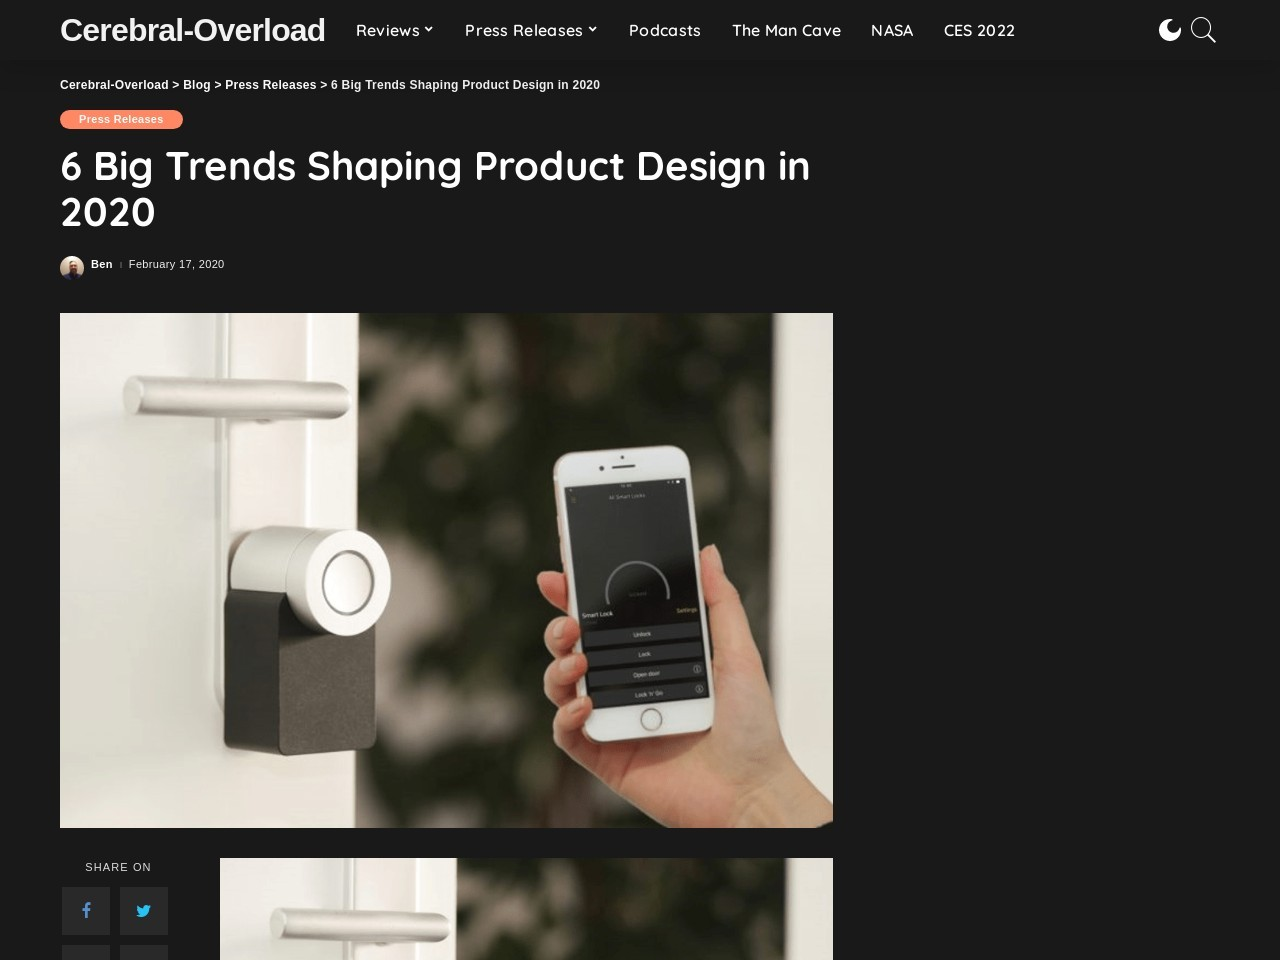 6 Big Trends Shaping Product Design in 2020